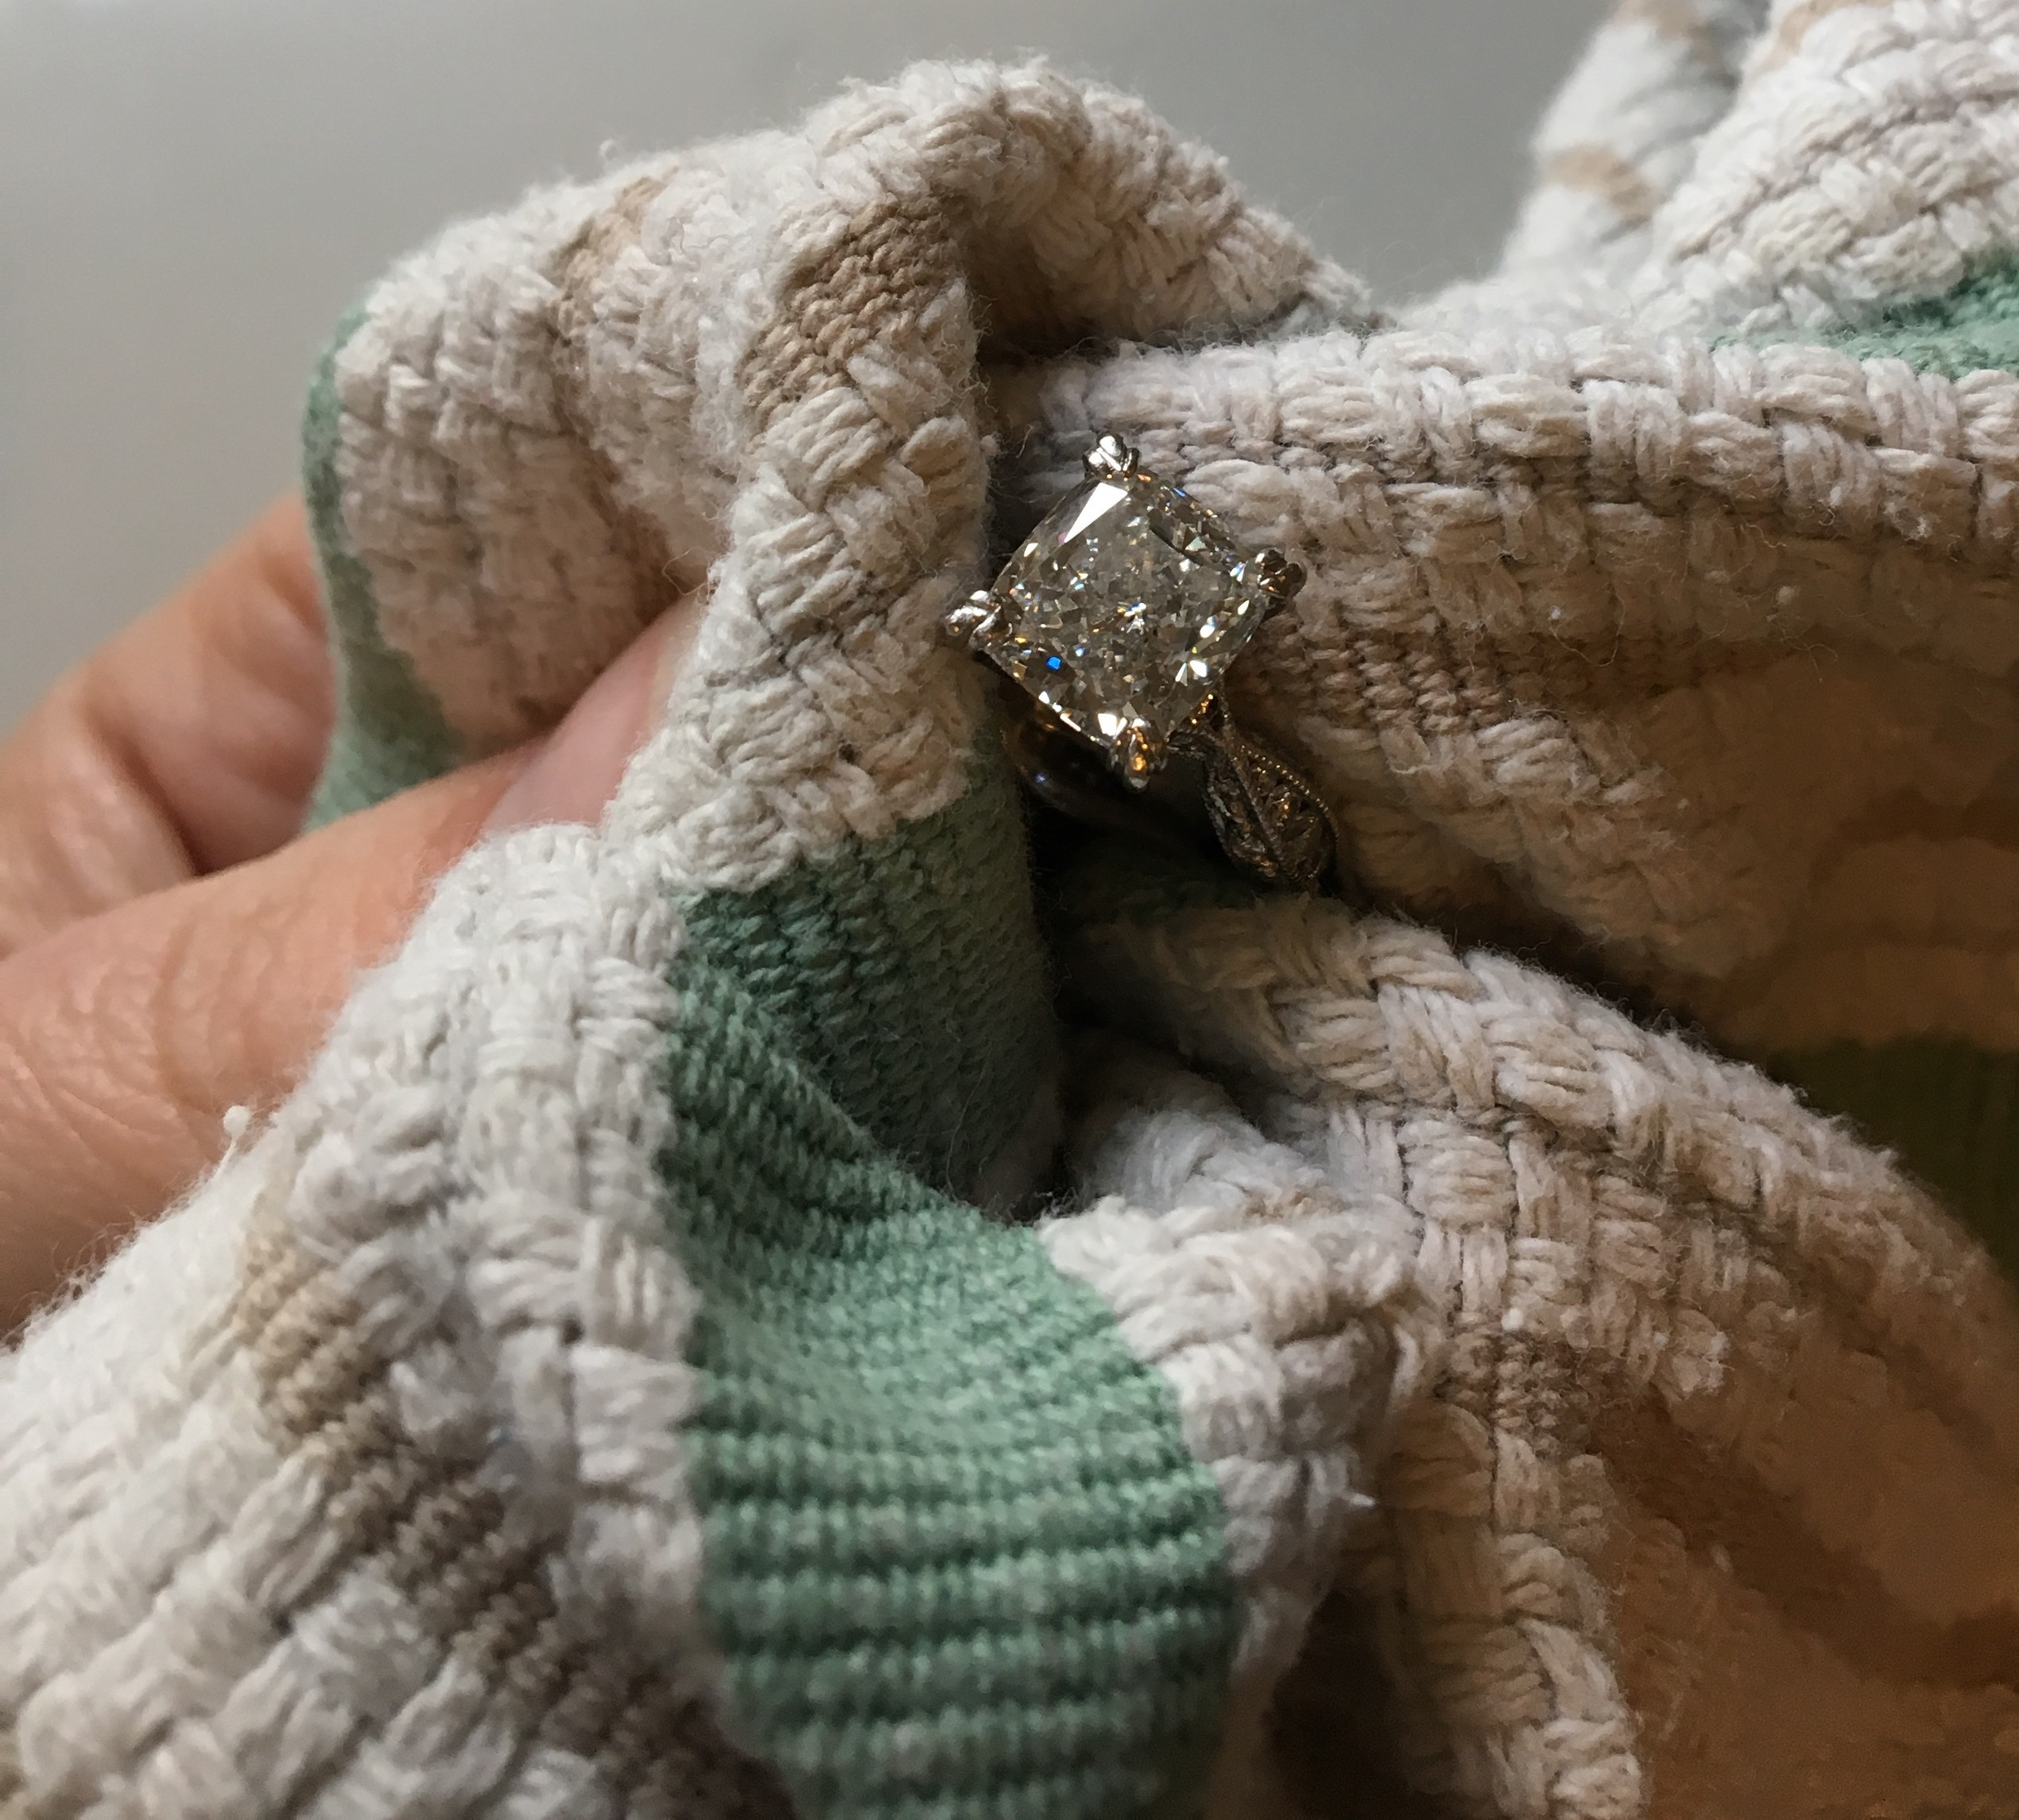 How-to Cleaning Jewlery Diamond Ring Tips